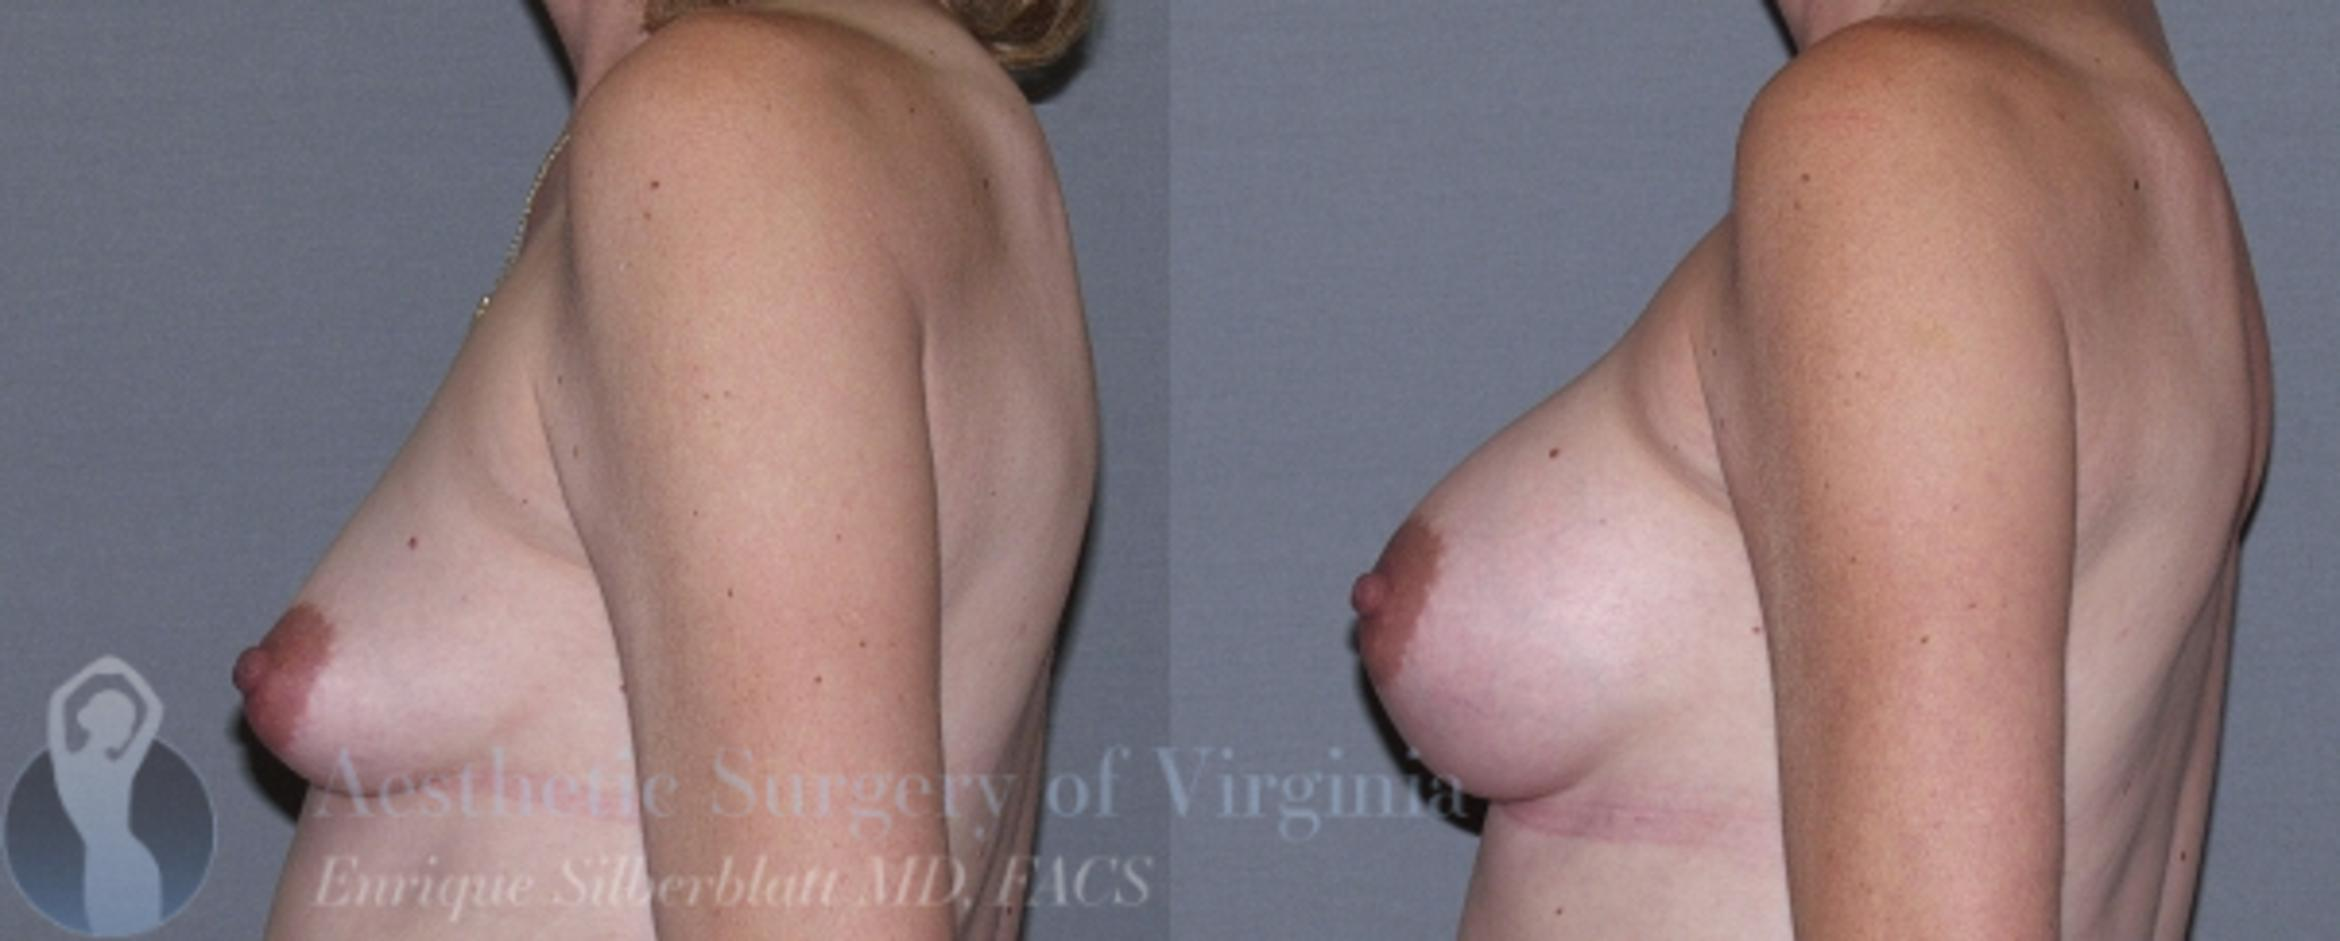 Breast Augmentation Case 12 Before & After View #3 | Roanoke, VA | Aesthetic Surgery of Virginia: Enrique Silberblatt, MD